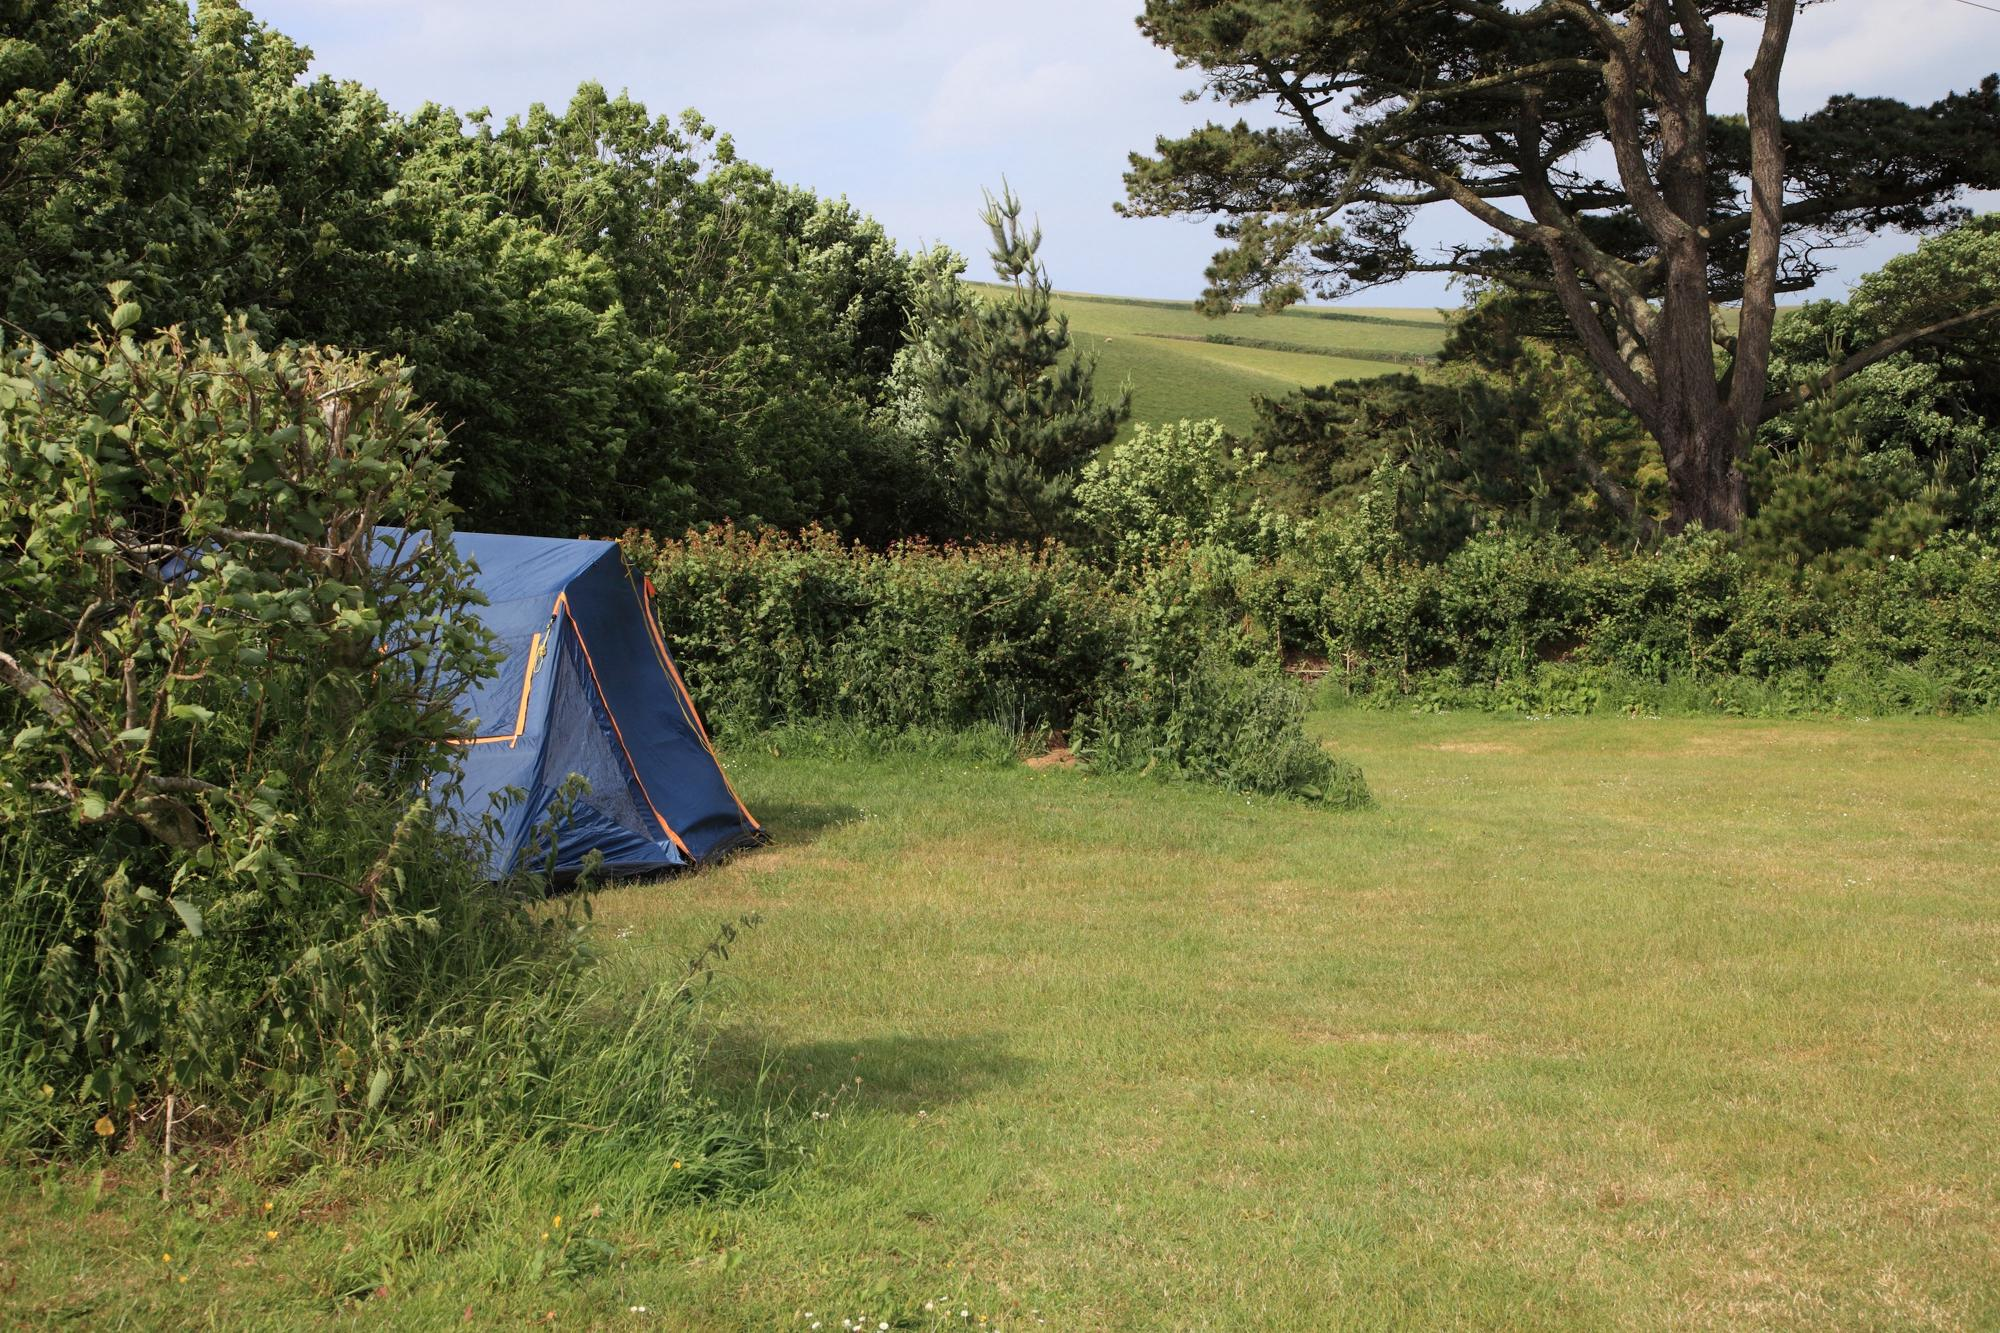 Torquay Camping | Best campsites in Torquay, Devon